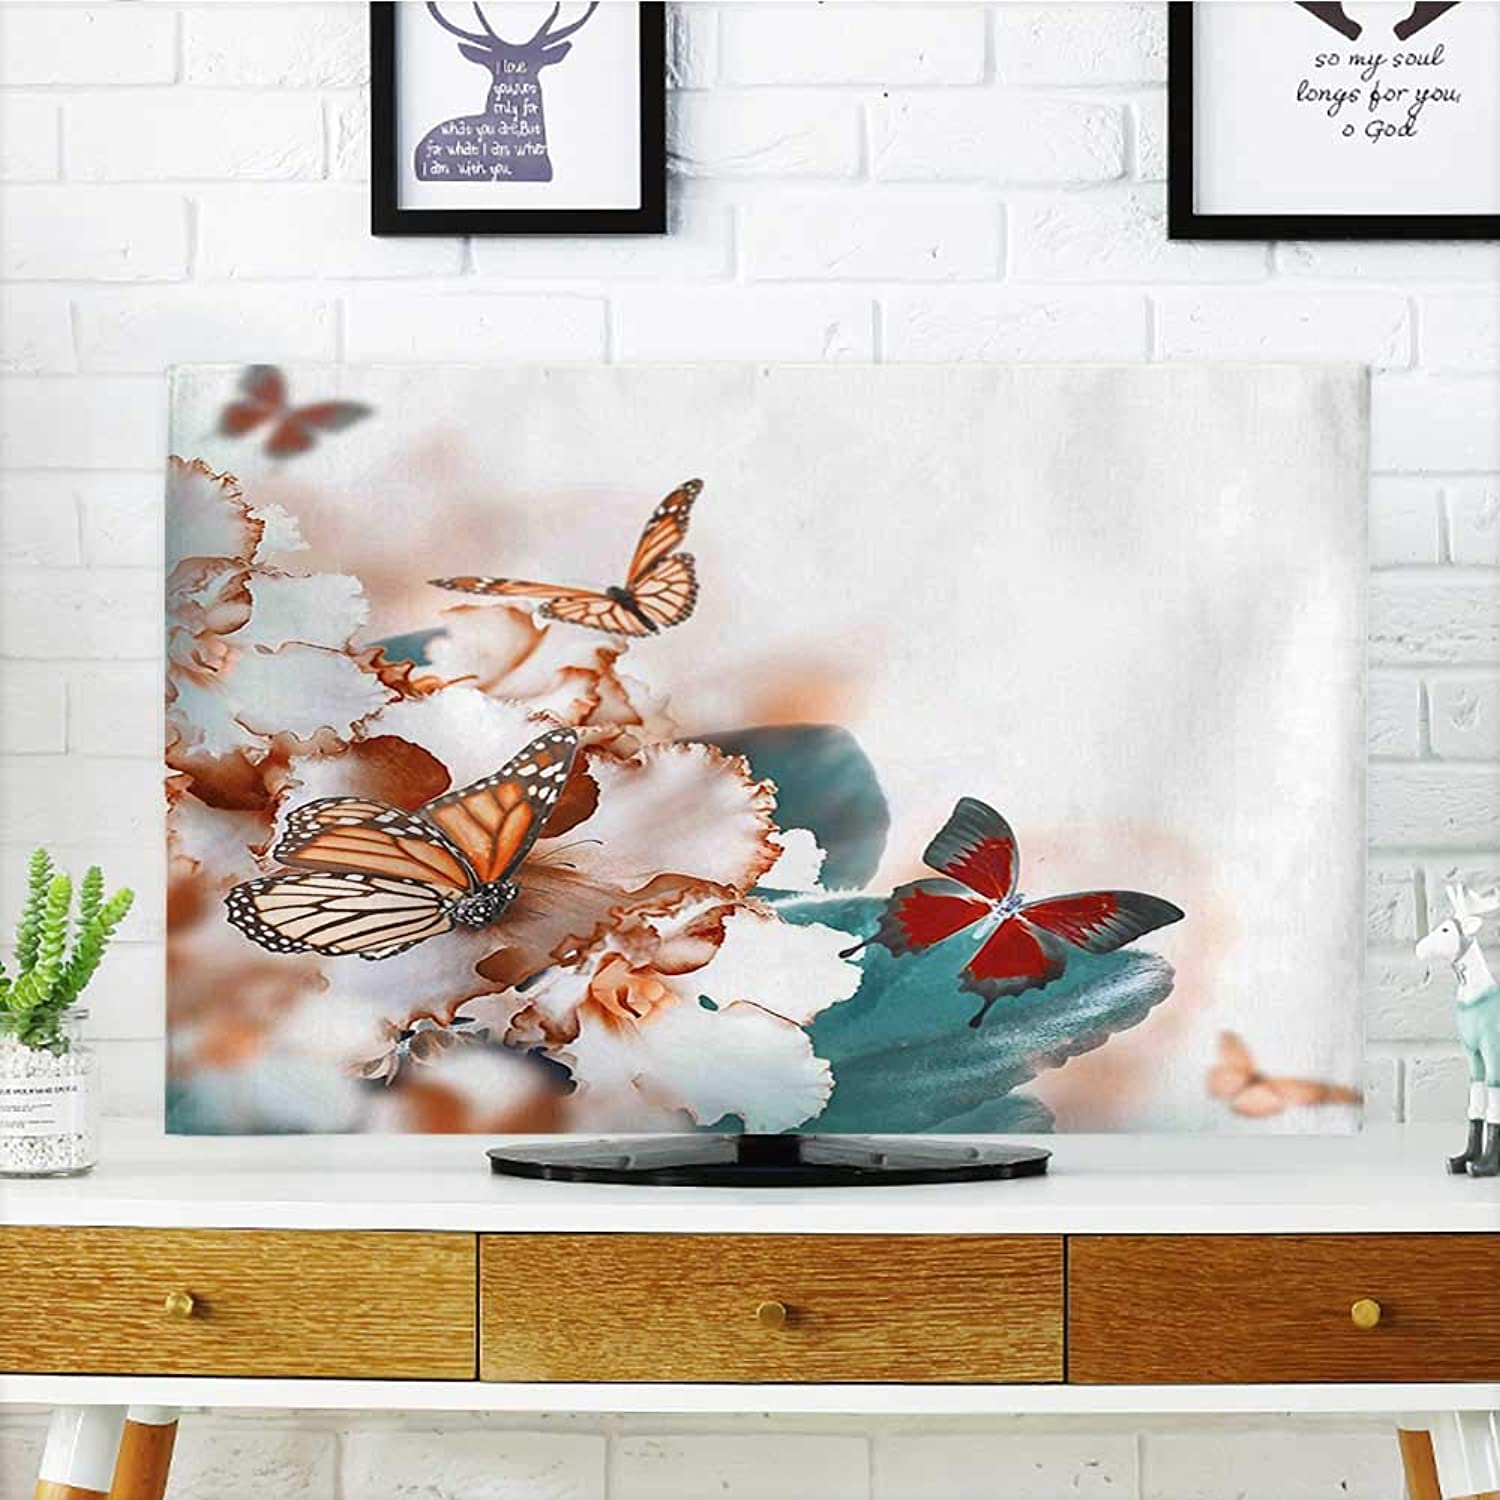 Jiahonghome Cord Cover for Wall Mounted tv Butterflies Flying Over purple Petals Flowers Spring Beauty Illustration Multicolor Cover Mounted tv W32 x H51 INCH TV 55